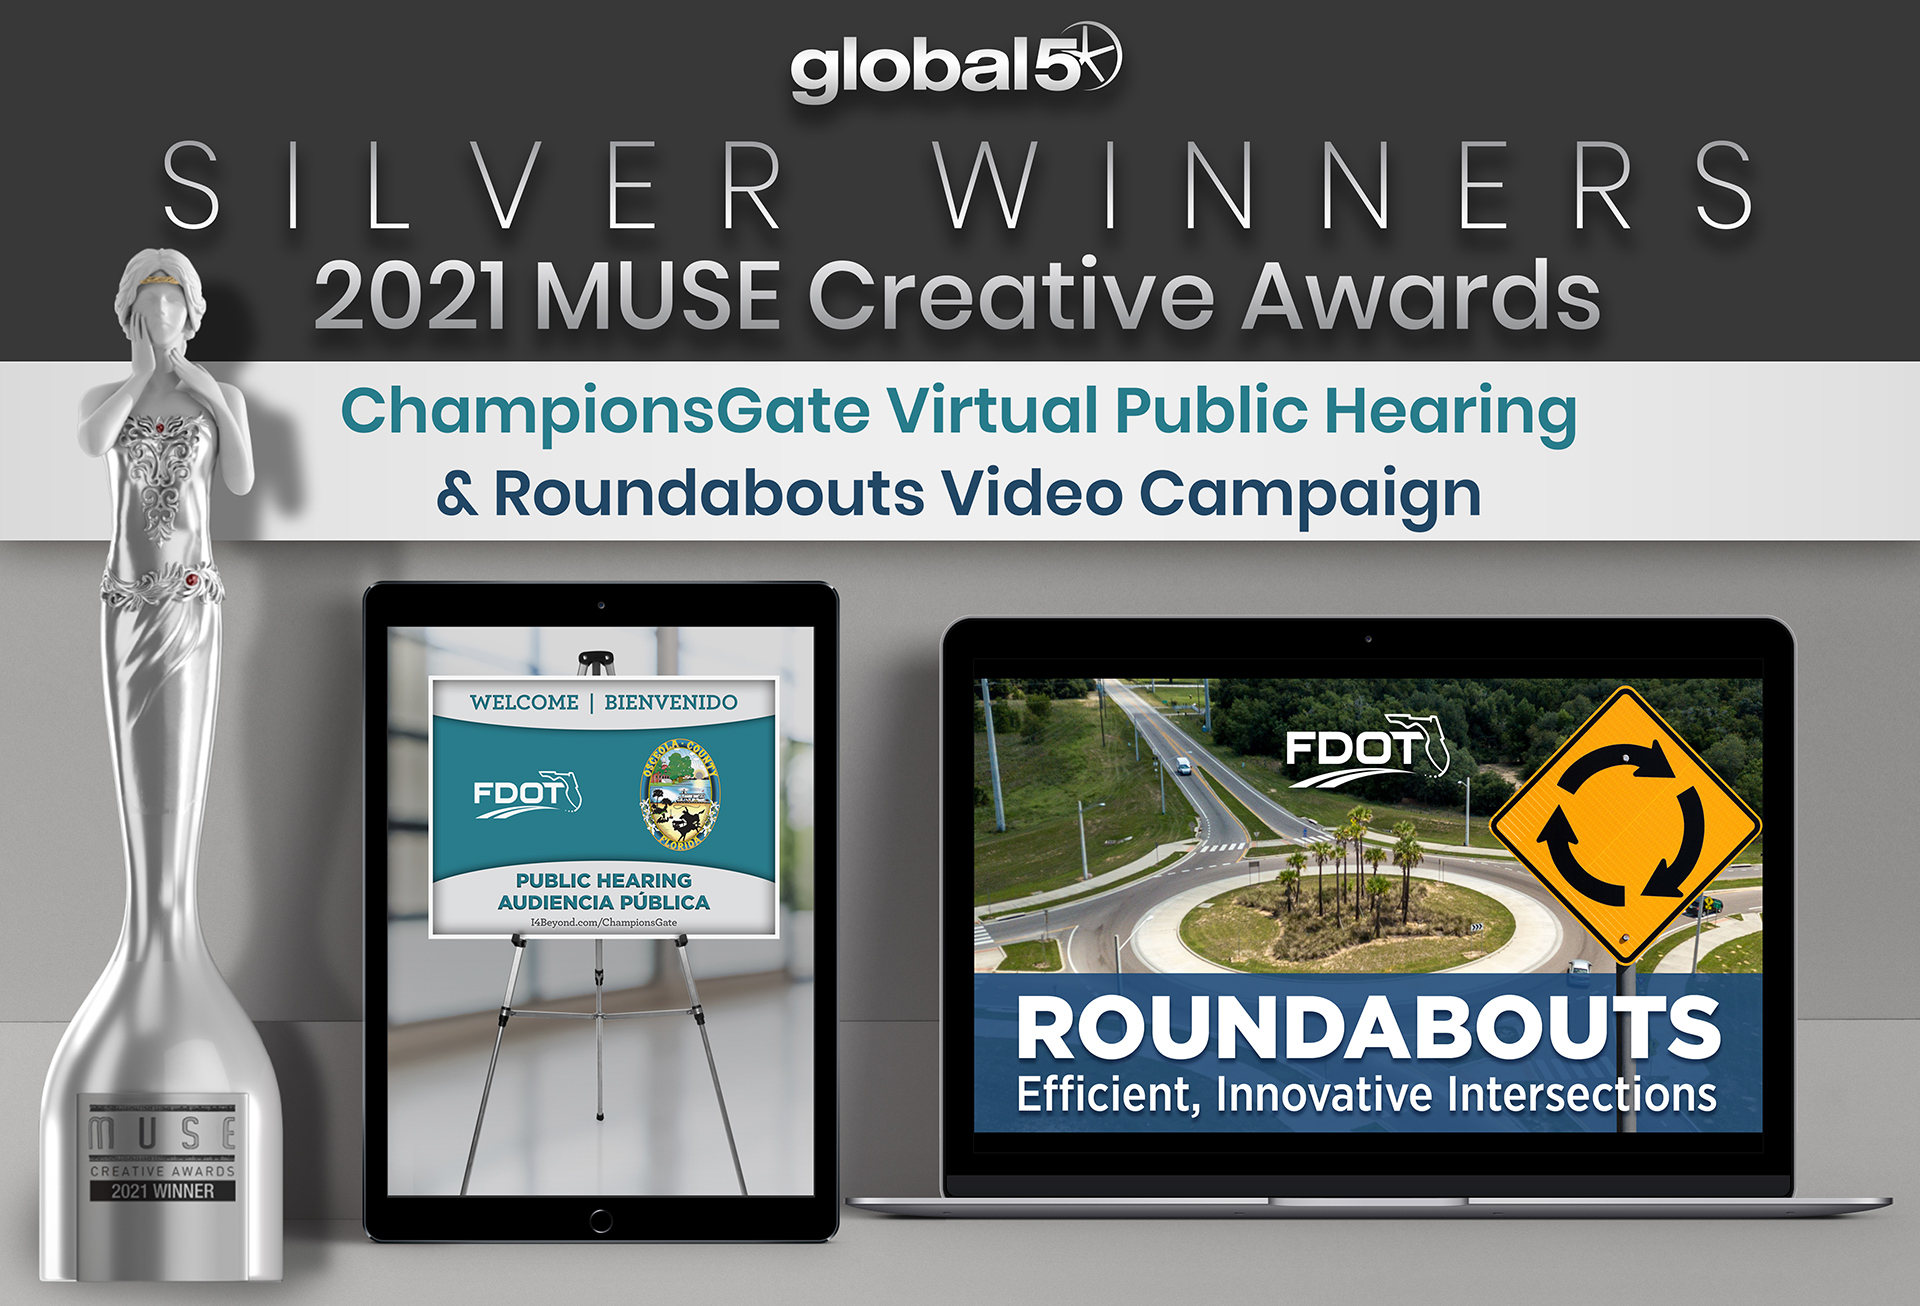 Global-5 Brings Home Two MUSE Creative Awards